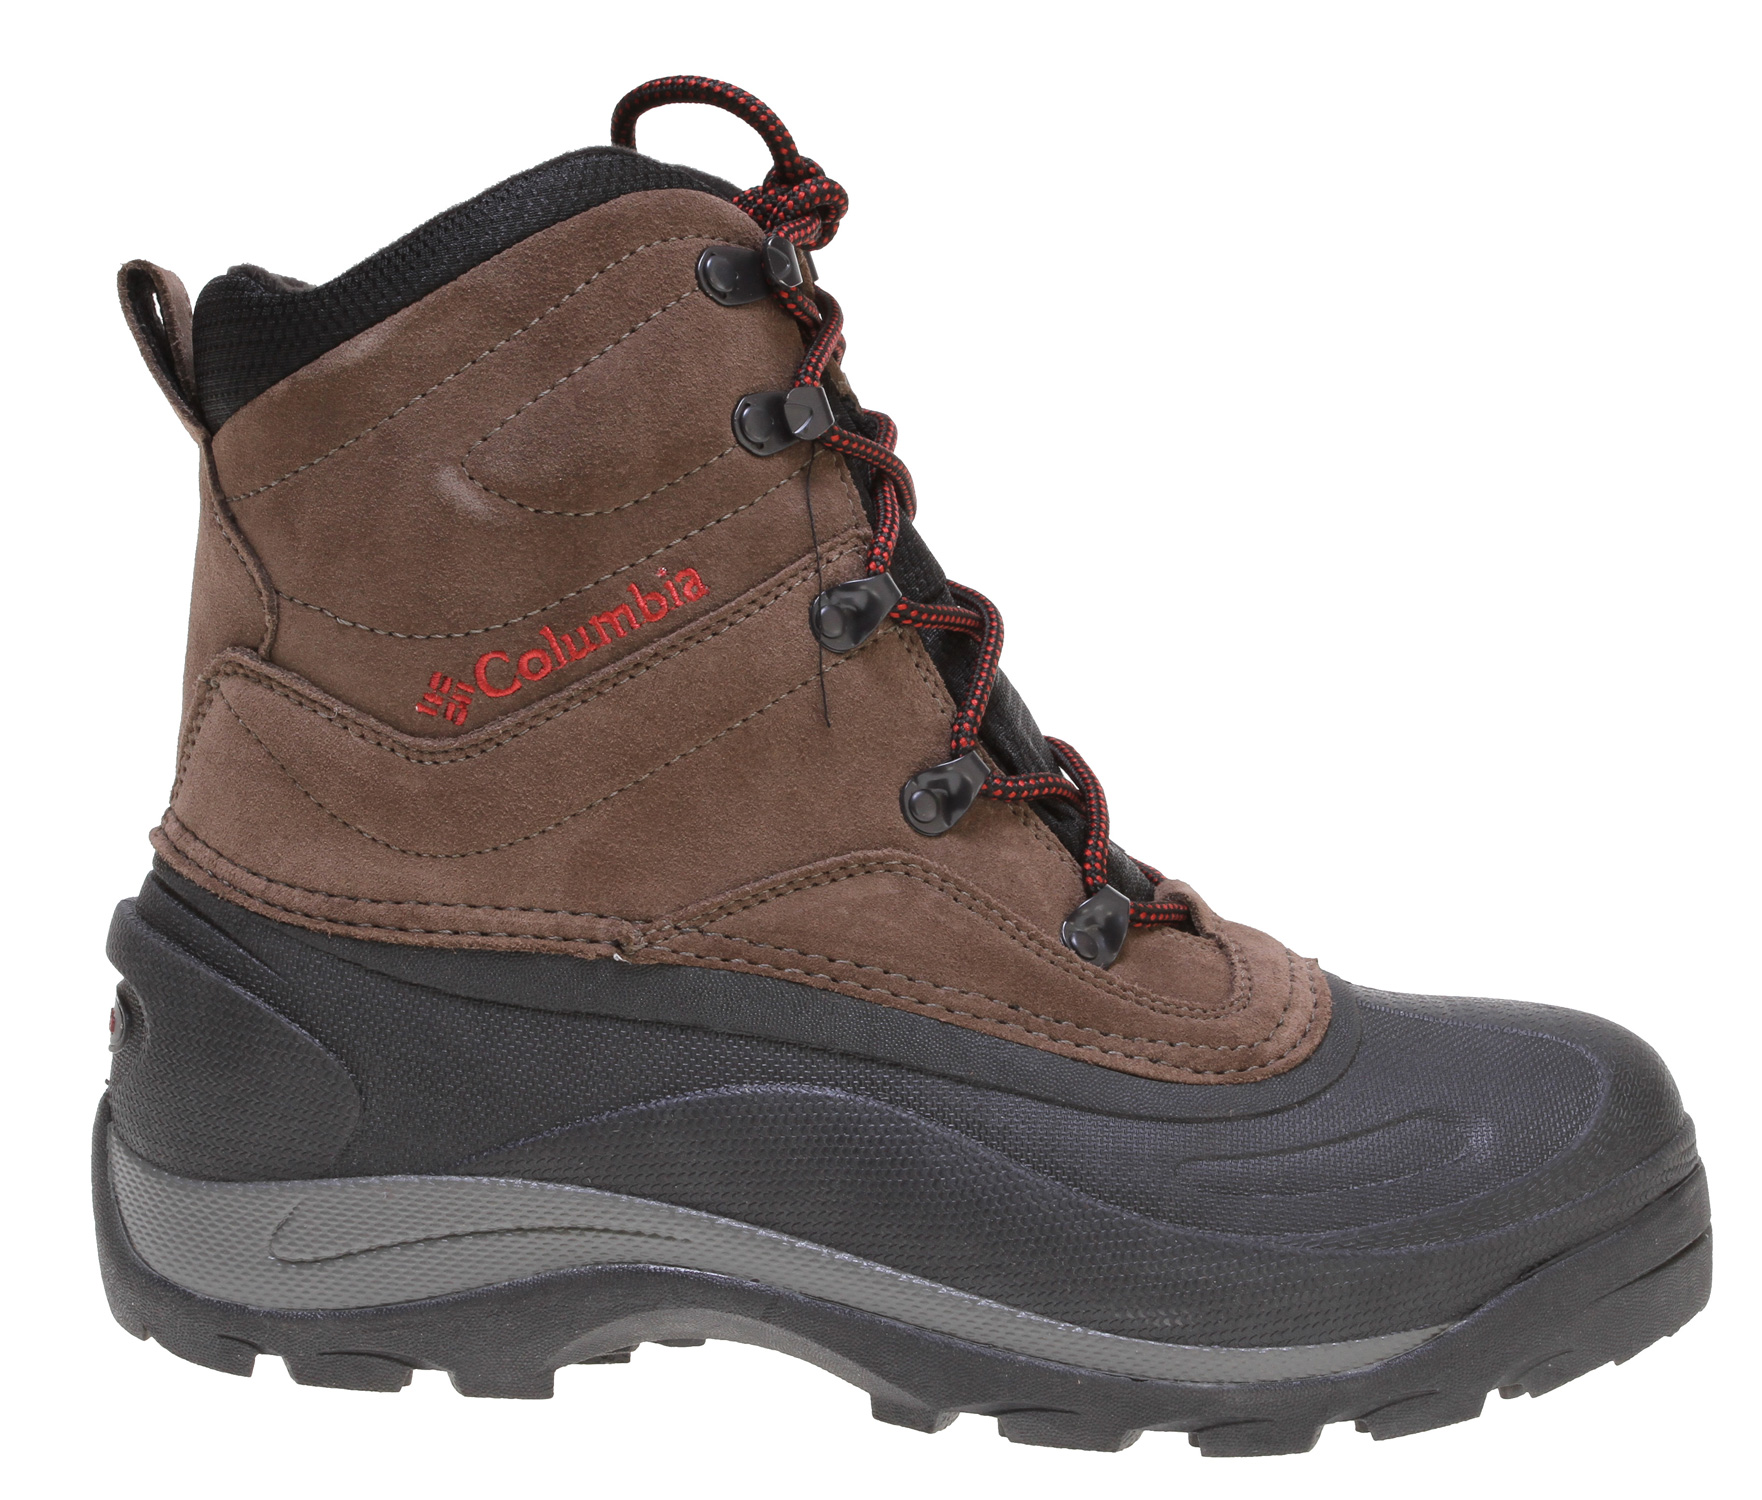 A value-packed water-resistant winter boot designed for the weekend warrior.Key Features of the Columbia Cascadian Summit 2 Boots: Upper: Water-resistant split suede leather. Seam-sealed construction. Insulation: 200g Thermolite. Rated -25F/-32C Footbed: Removable EVA footbed with nylex cover or cushioning and comfort Insole: ThermaShield frost plug that provides heat reflection and prevents cold from penetrating from the ground Midsole: Internal EVA provides lightweight cushioning Shell/Outsole: One-piece injection molded thermal rubber shell provides lightweight durable protection with lug tread pattern that provides good traction on a variety of surfaces. - $75.95